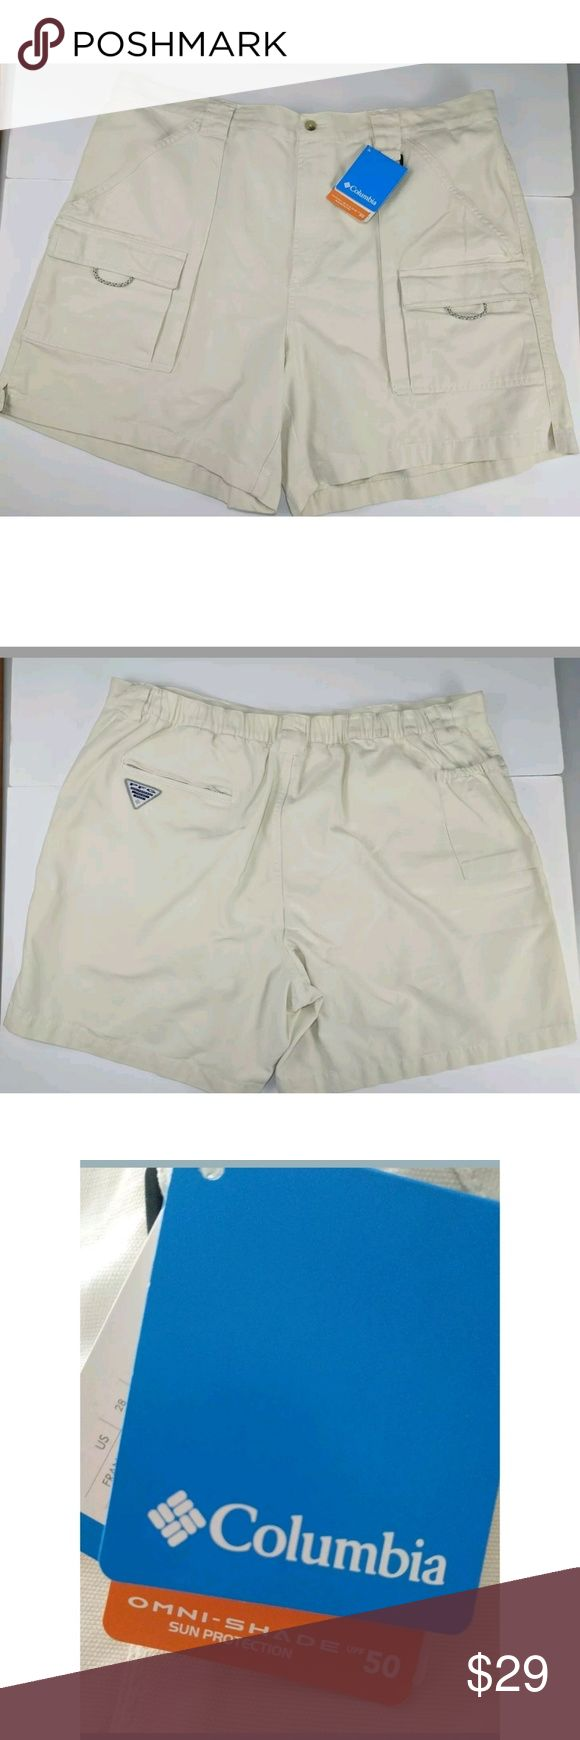 New Columbia PFG Fishing Shorts Size XL New Columbia PFG Fishing Shorts Size XL. Omni SPF 50.  Waist measures 38 inches unstretched but has elastic.  Inseam measures 6.5 inches. Columbia Shorts